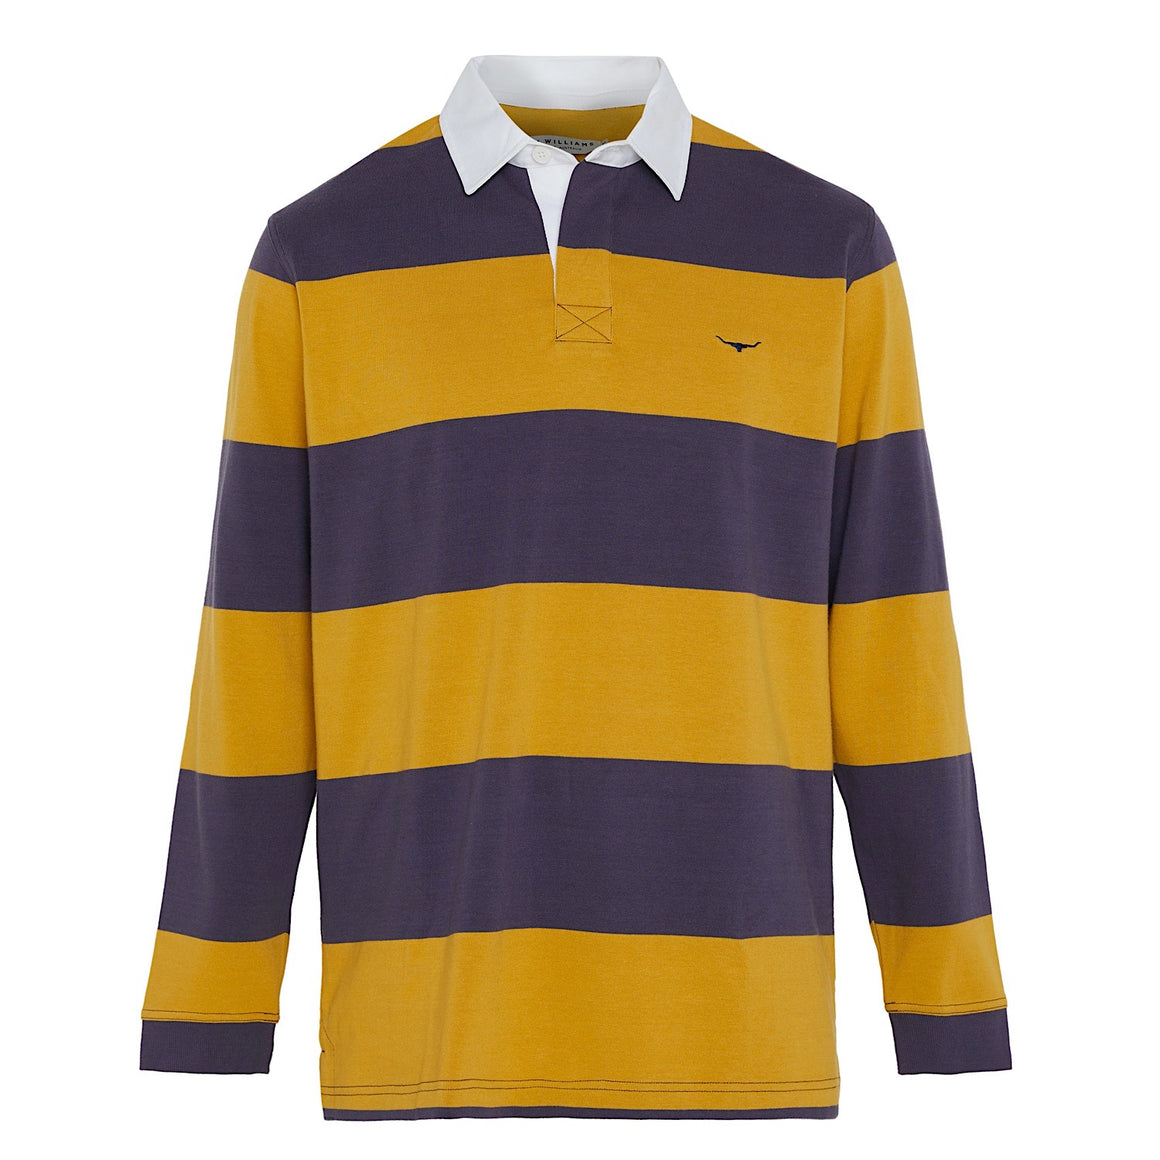 R.M.Williams Tweedale Block Stripe Rugby Blue/Yellow